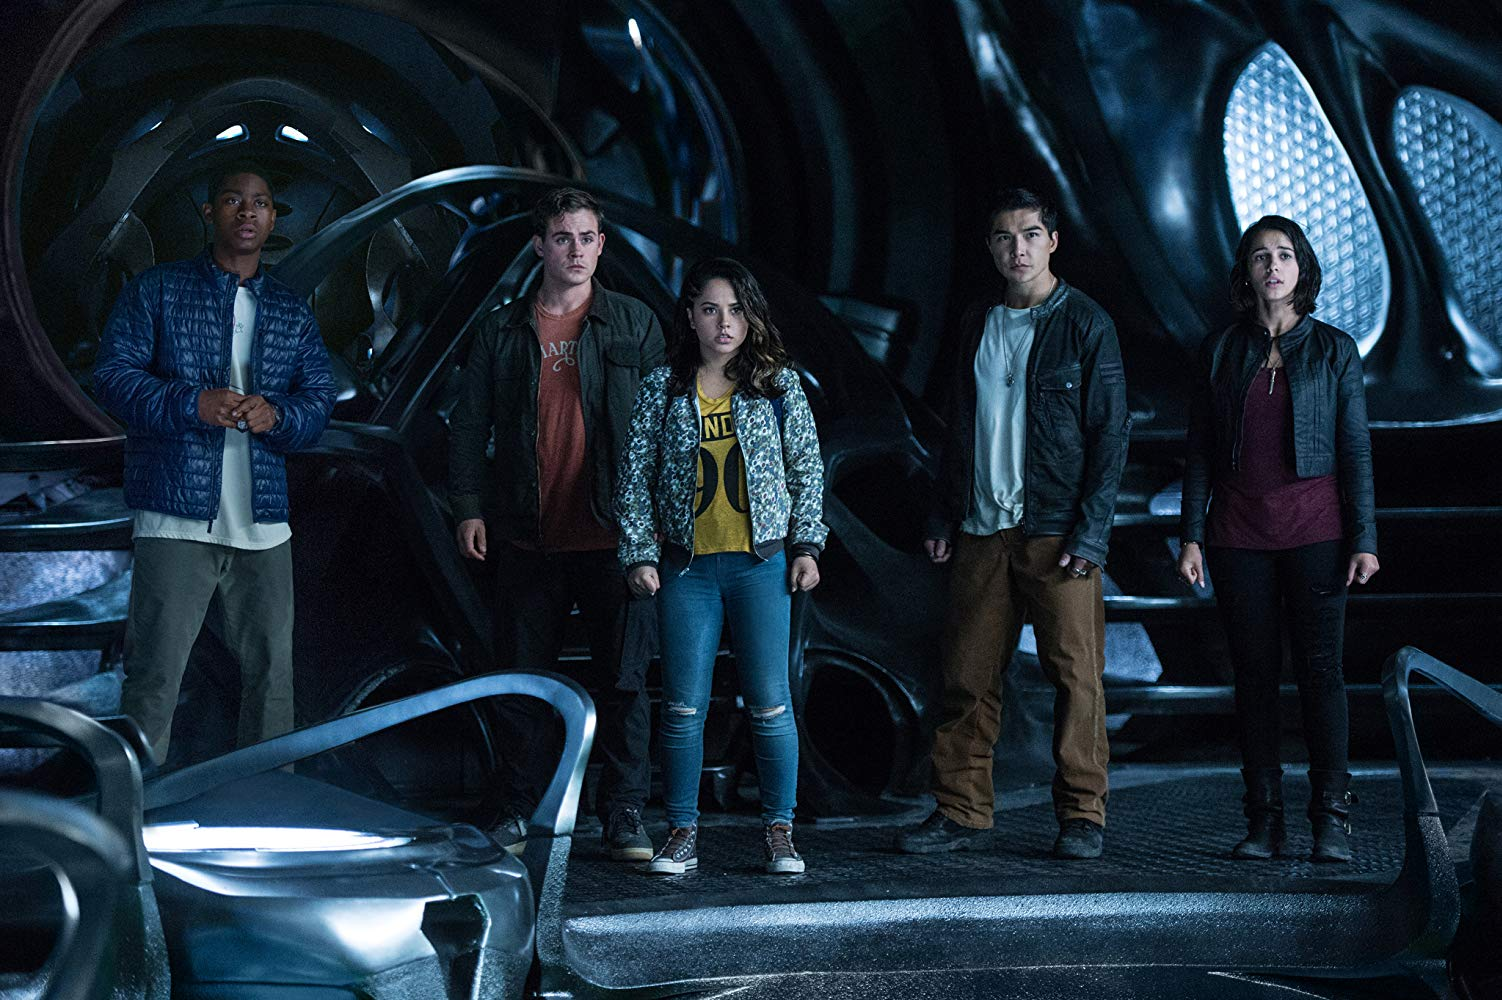 (l to r) R.J. Cyler, Dacre Montgomery, Becky G, Ludi lin and Naomi Scott in Power Rangers (2017)